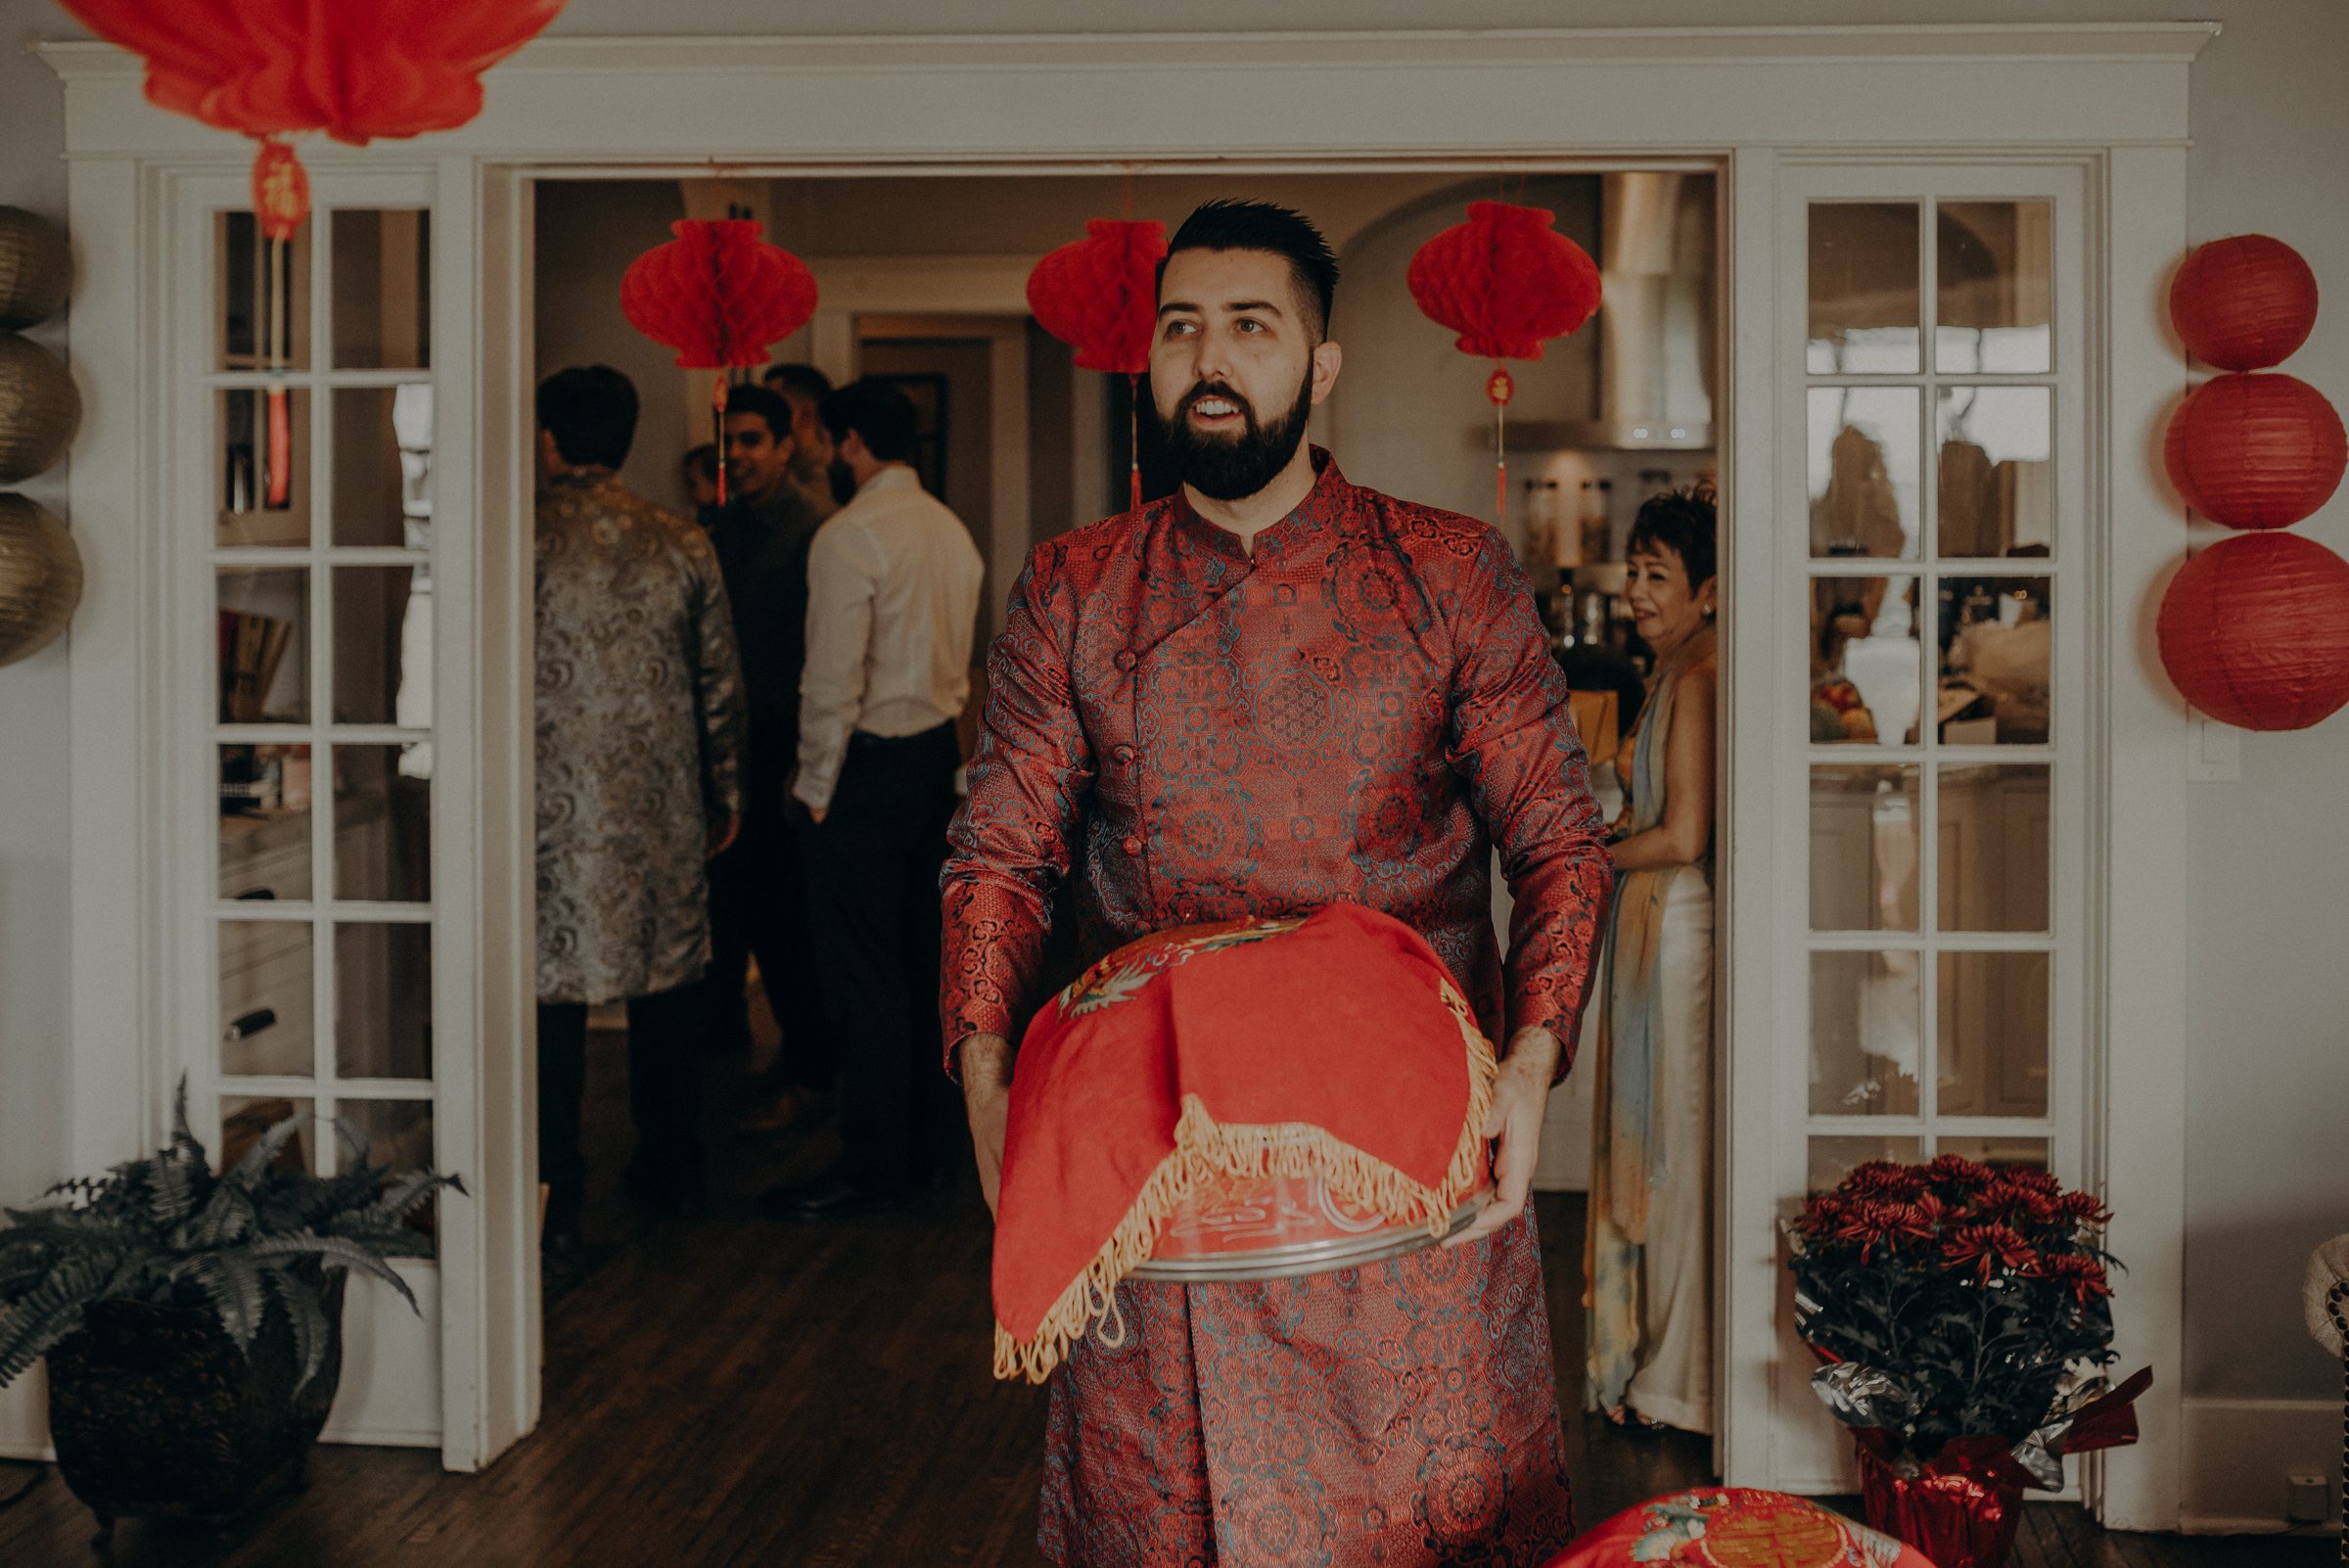 Los Angeles Wedding Photographer - IsaiahAndTaylor.com - The Ebell of Long Beach Wedding - Traditional Vietnamese tea ceremony-041.jpg